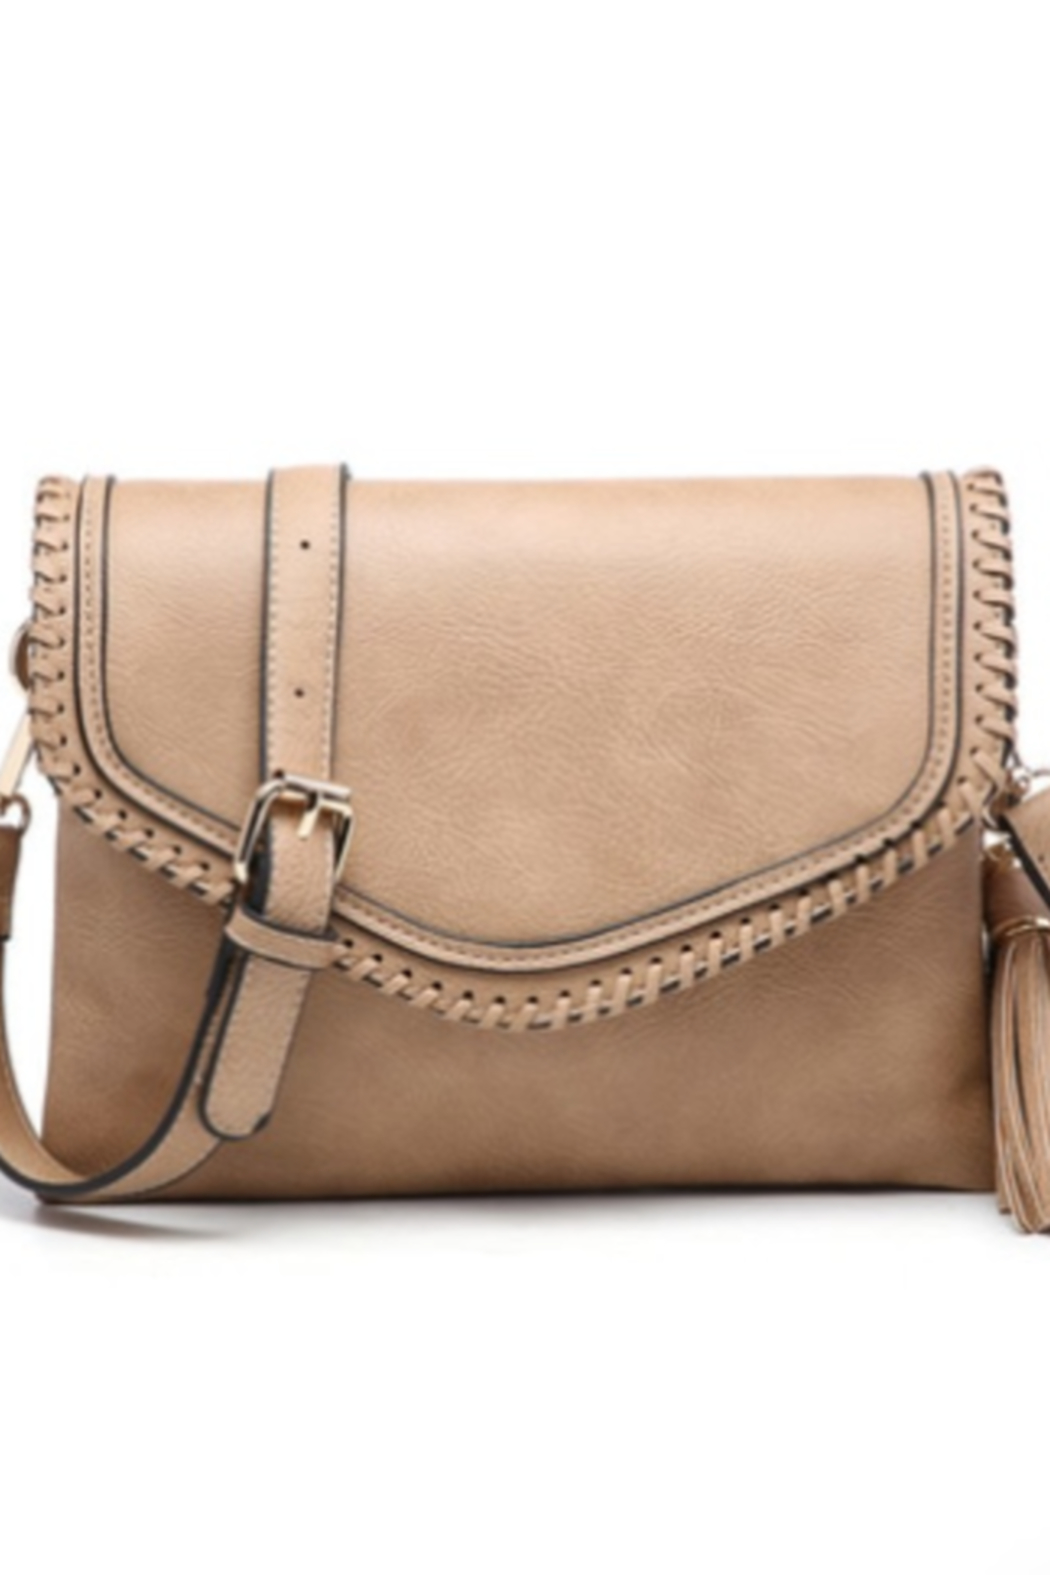 jen & co Trim Envelope Crossbody/Clutch - Main Image